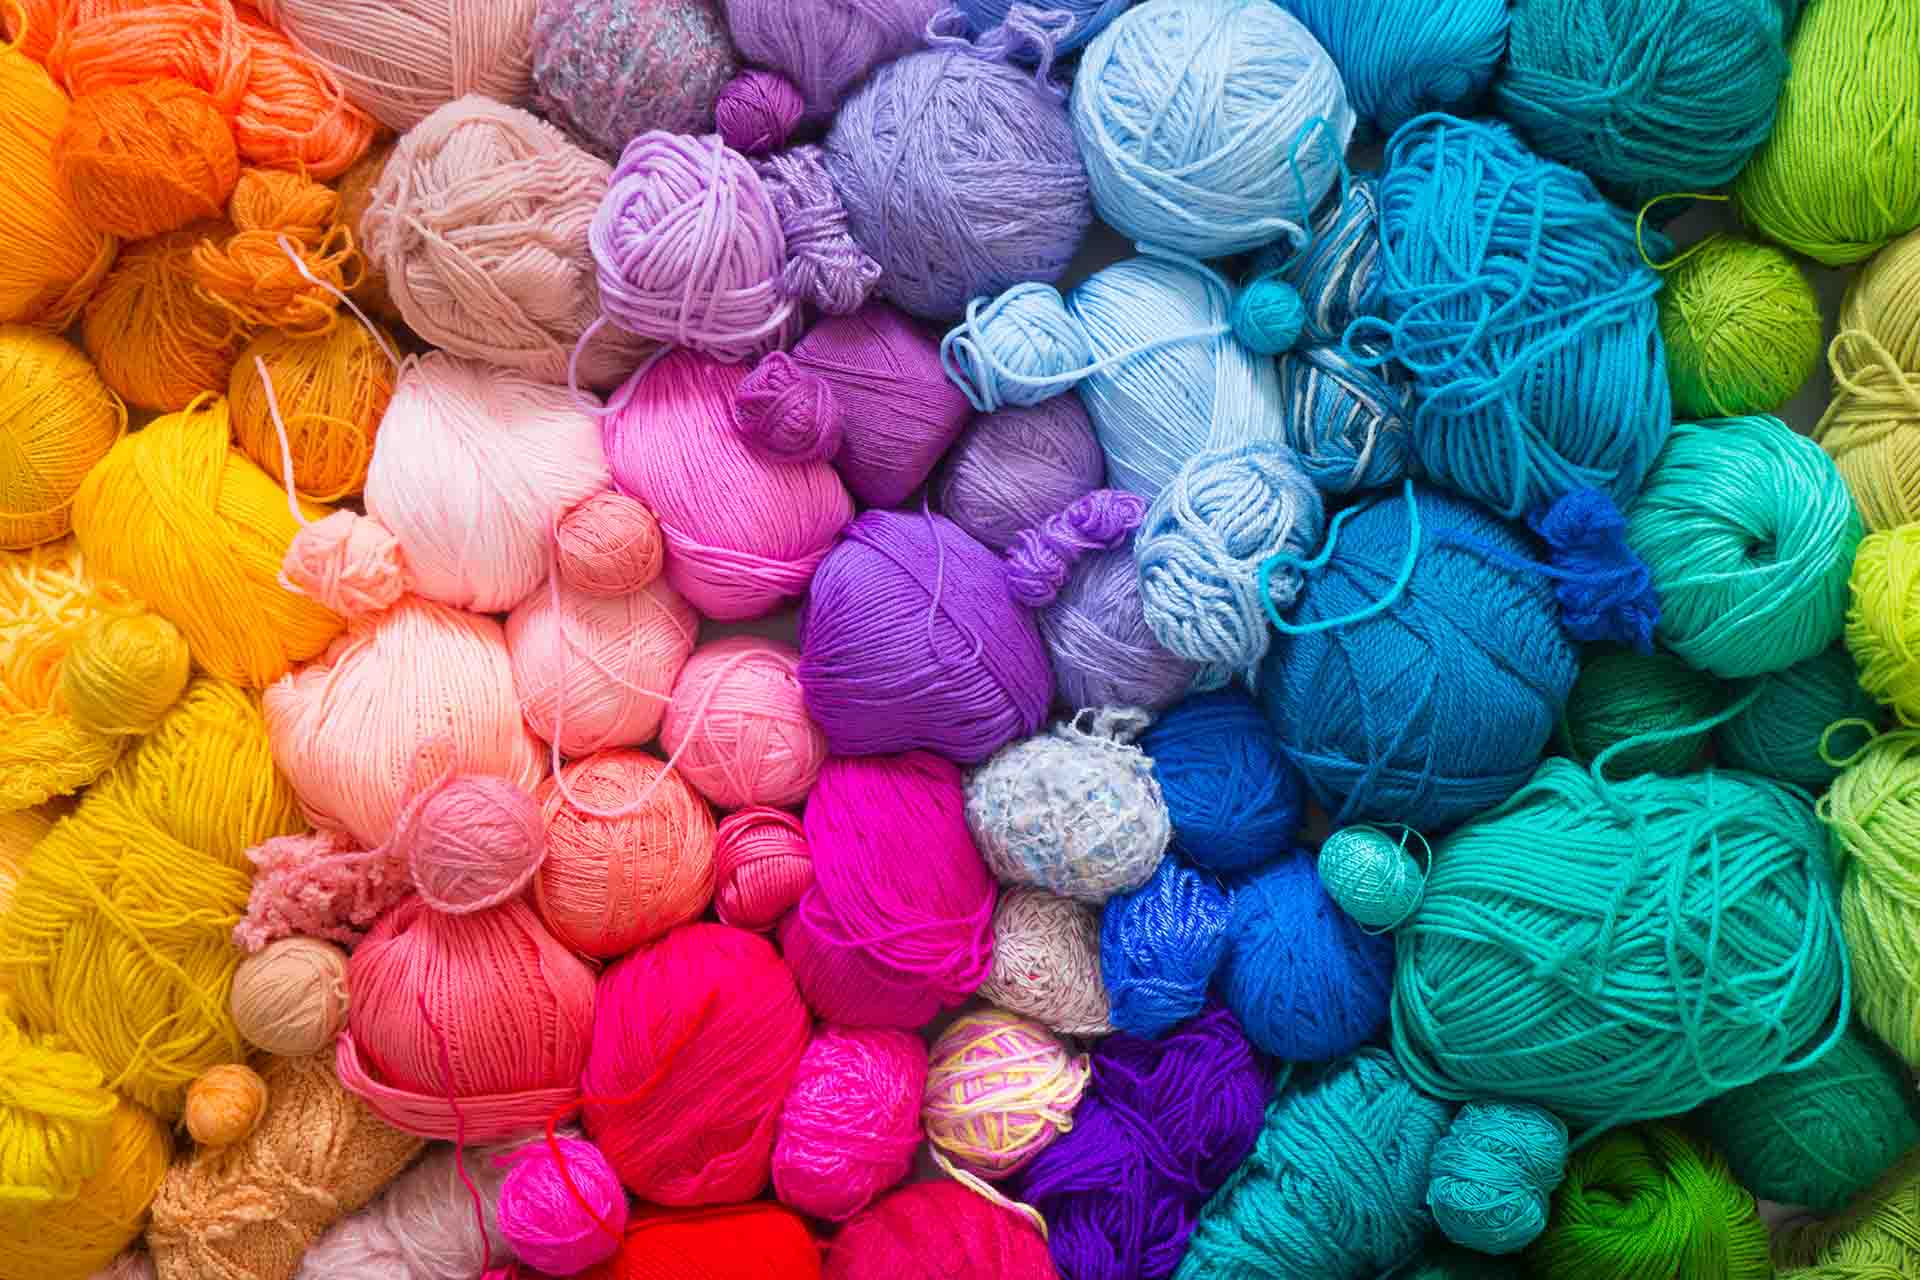 Overhead picture of balls of yarn with the colors arranged in a rainbow pattern.